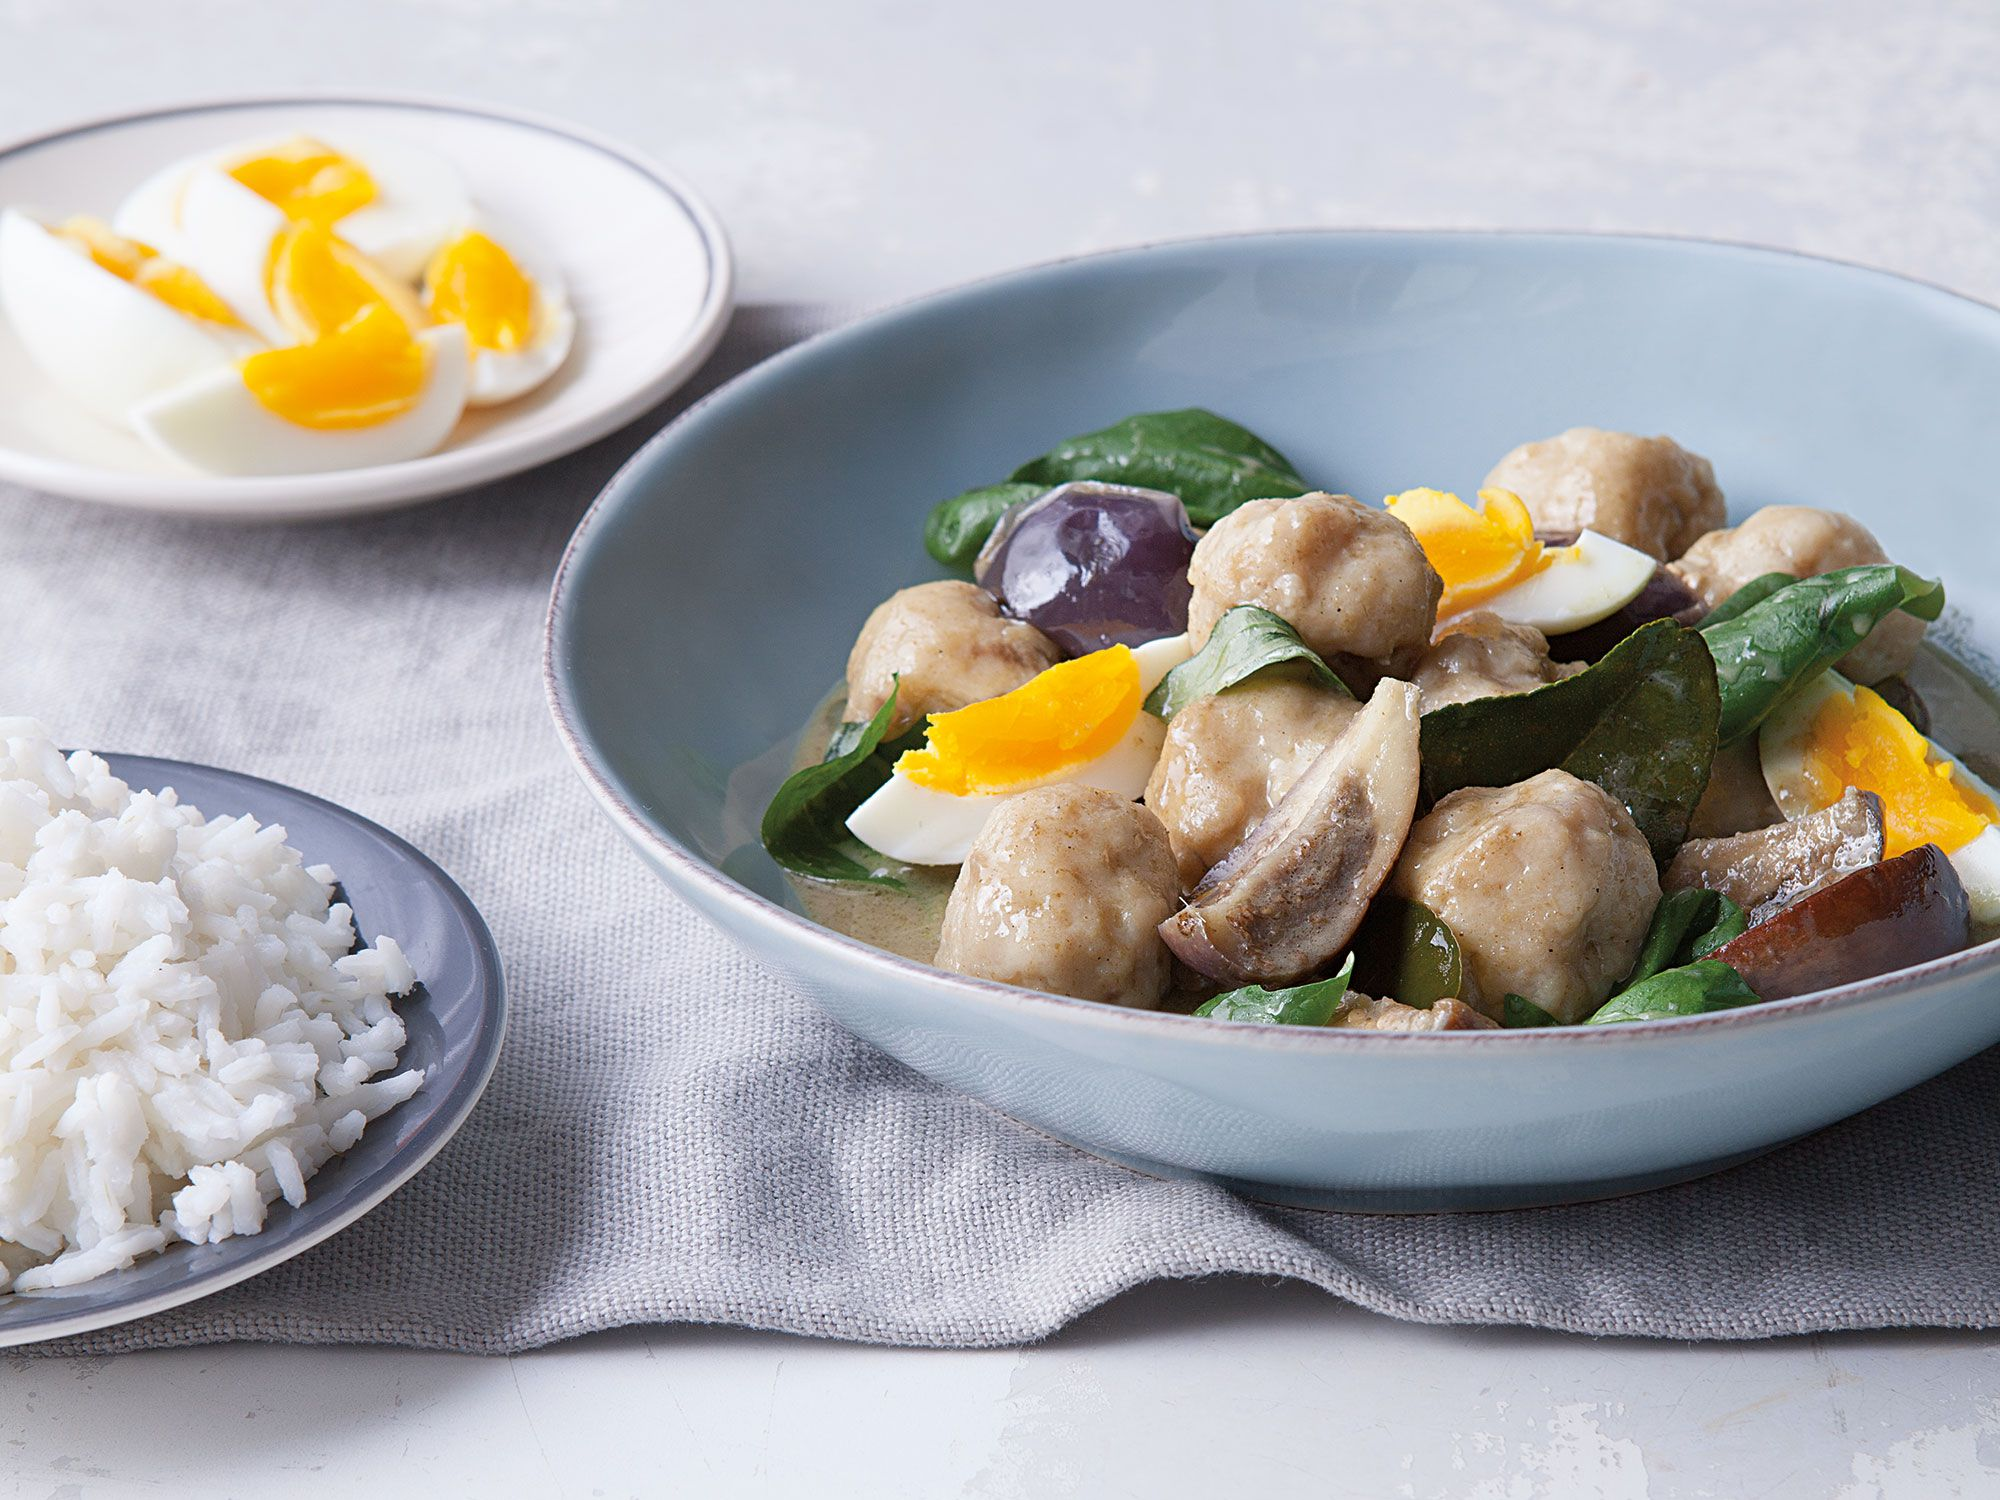 "Thai-style dumplings add a nice, bouncy texture to this green curry. Get the recipe for <a href=""https://www.saveur.com/article/recipes/kaeng-khiaw-waan-green-curry-with-fish-and-eggplant"">Green Curry with Fish and Eggplant (Kaeng Khiaw Waan)</a>"